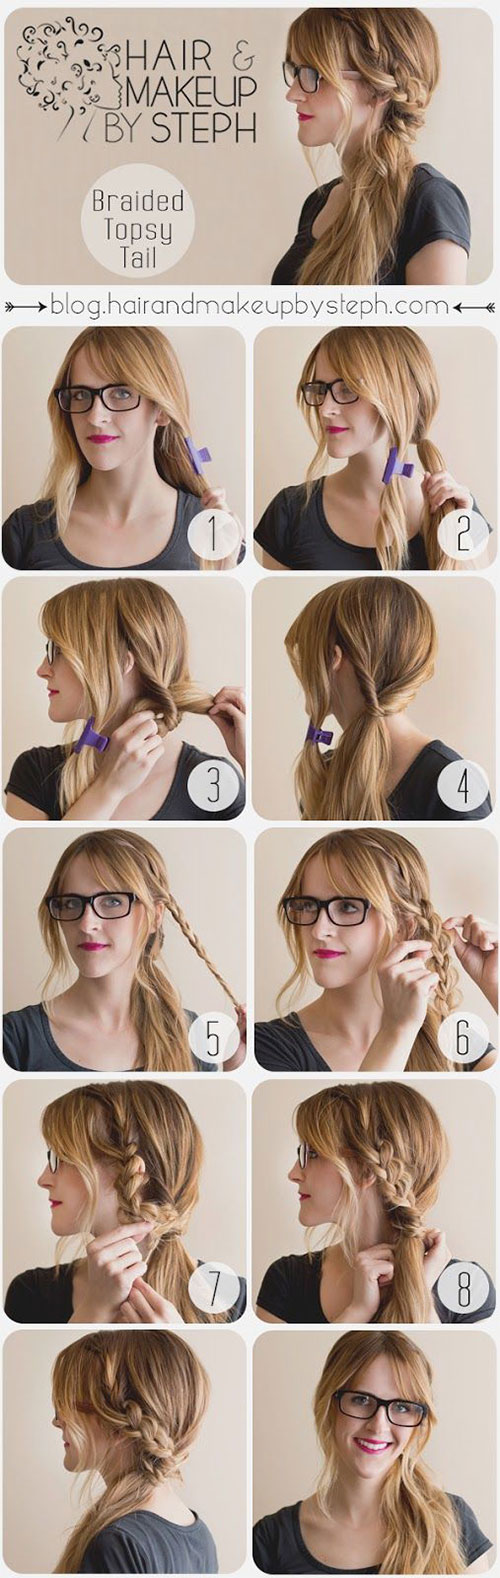 12-Step-By-Step-Spring-Hairstyle-Tutorials-For-Learners-2016-1